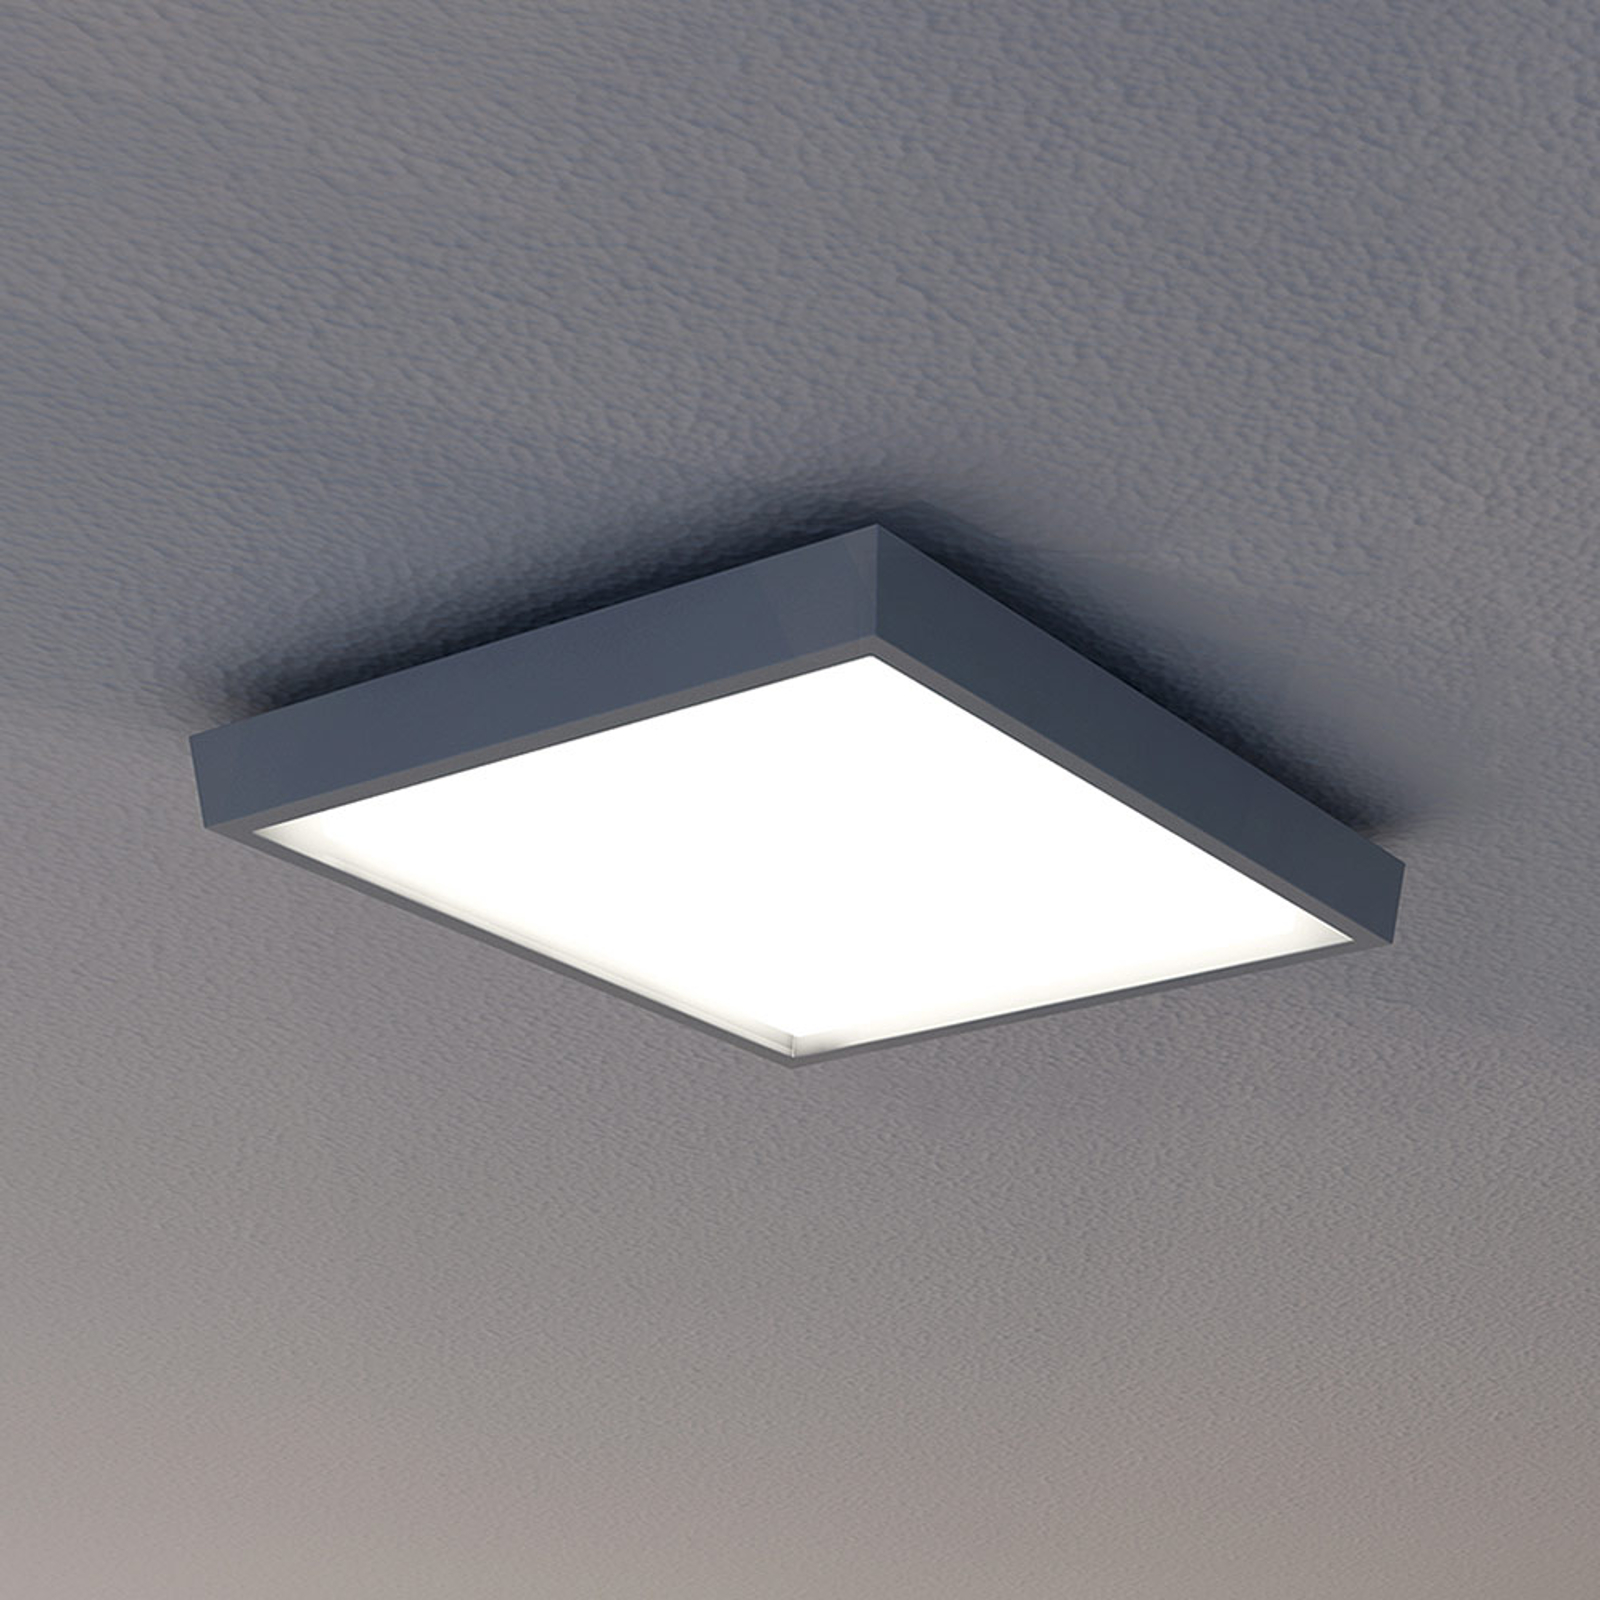 LED outdoor ceiling light IP54 in a modern design_7000947_1